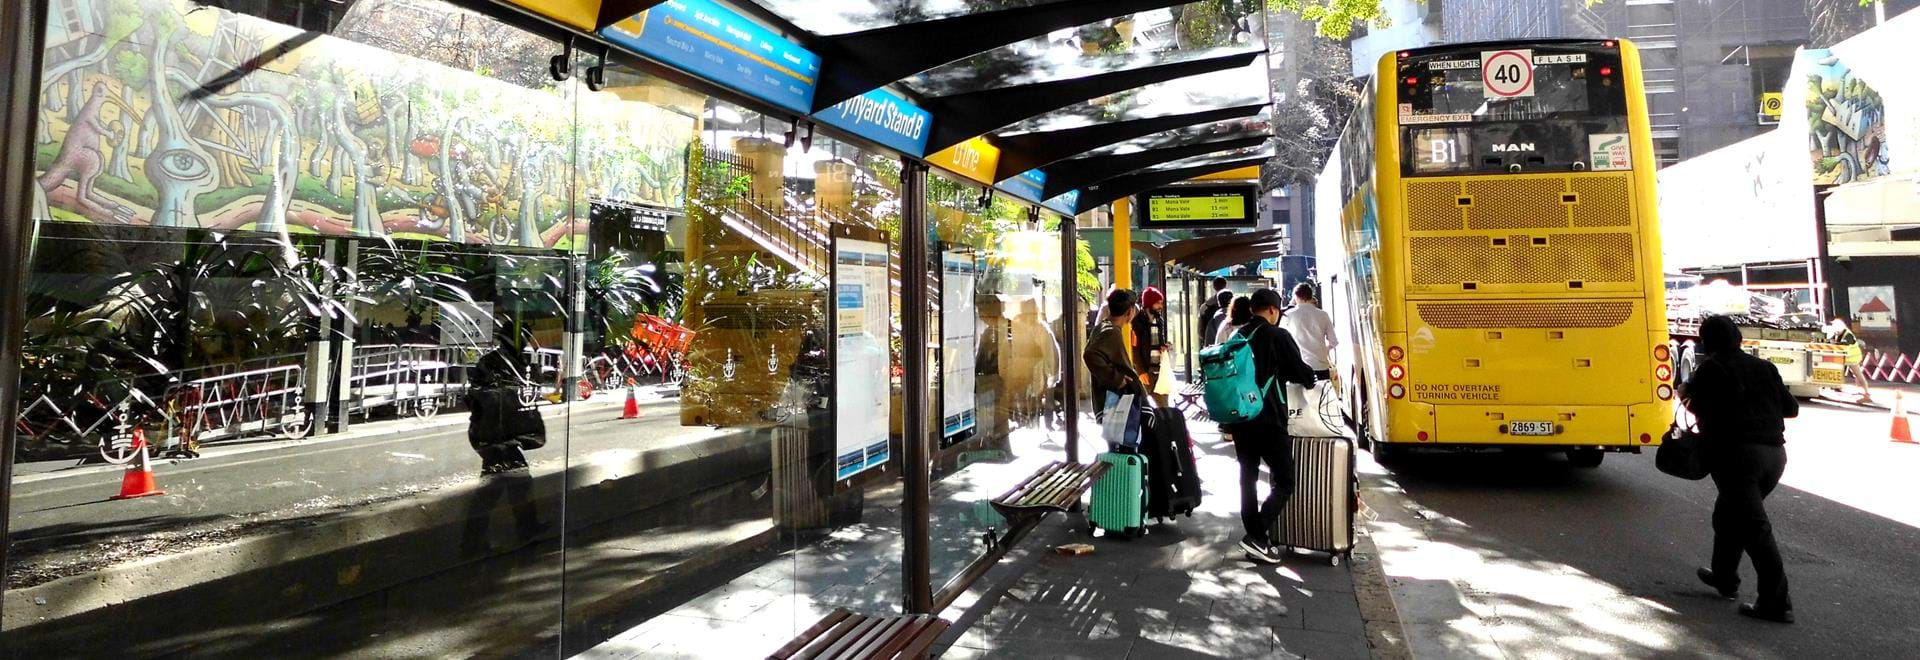 Photo of one of the B line bus stations